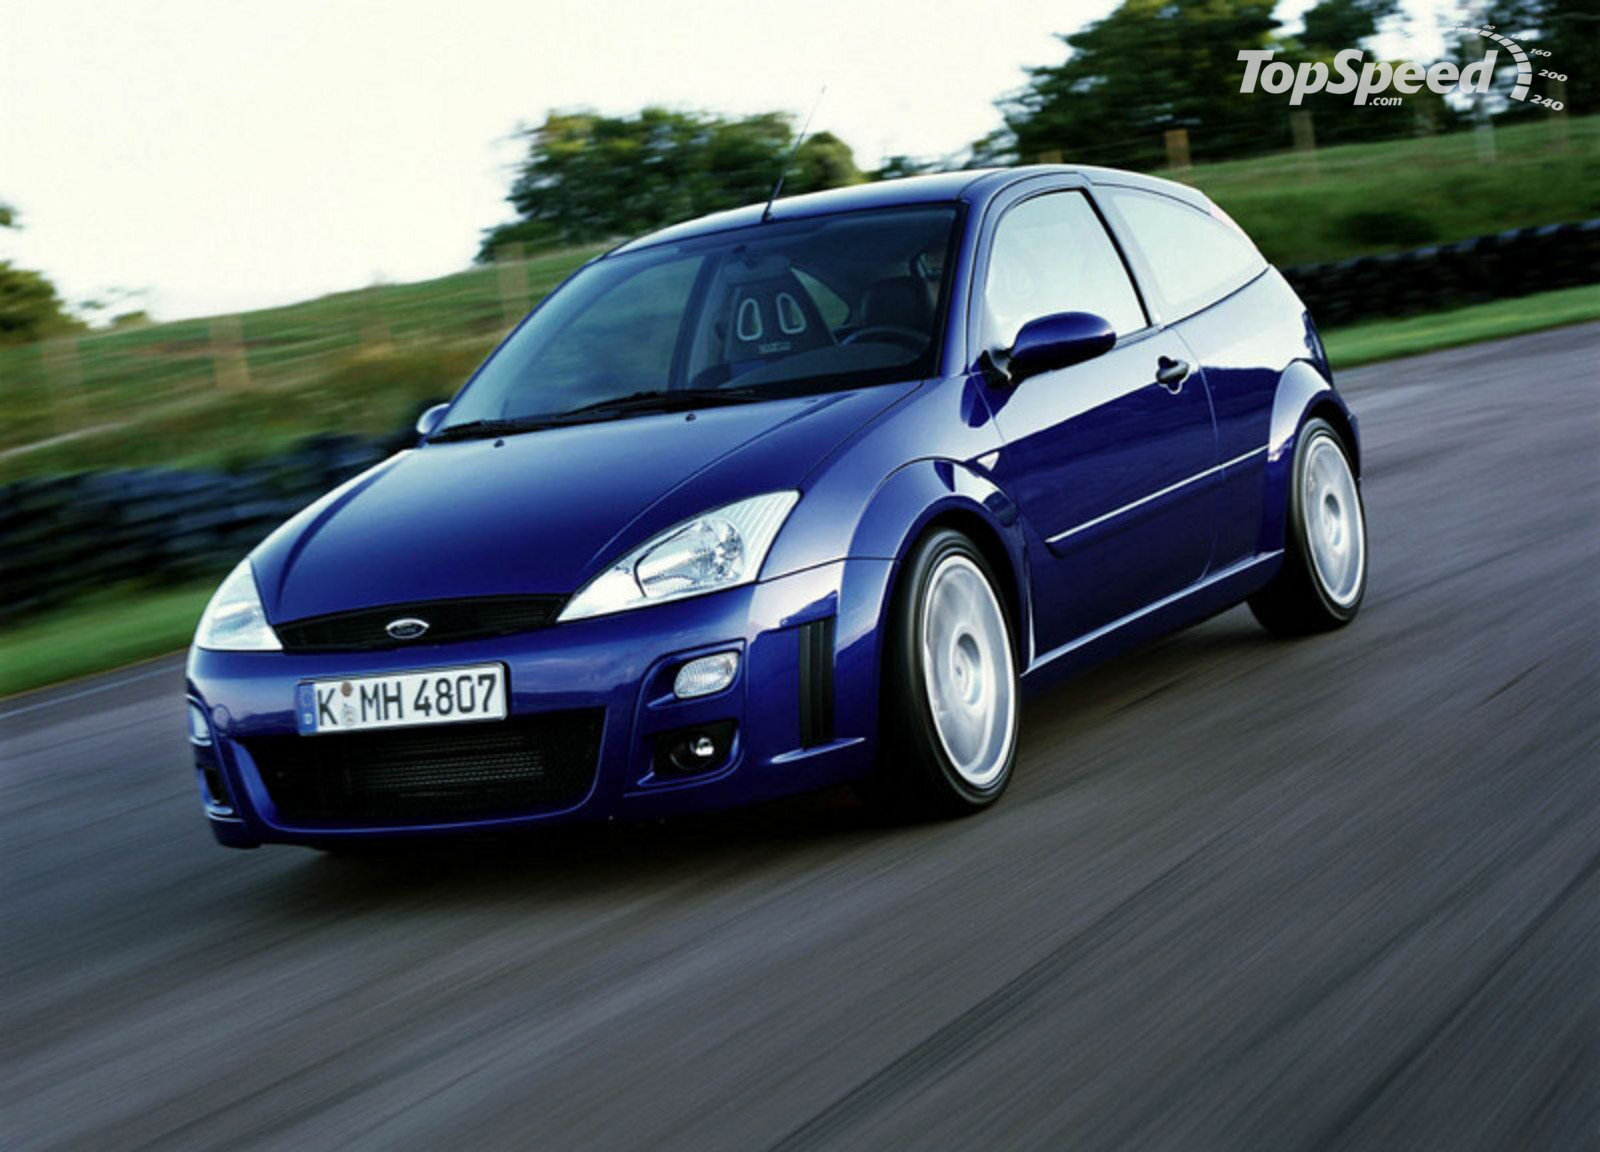 ford focus 2003 images